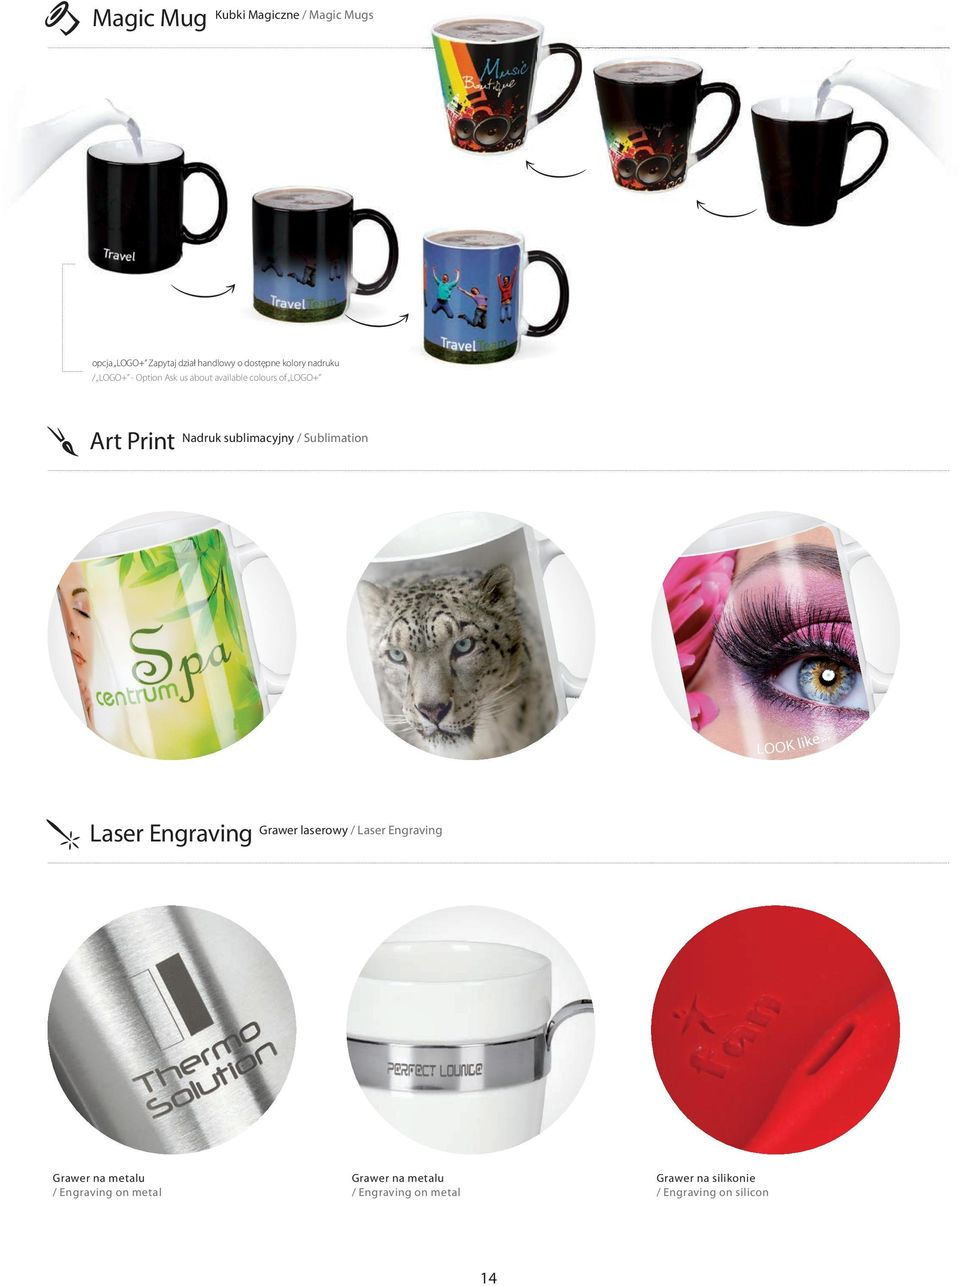 sublimacyjny / Sublimation Laser Engraving Grawer laserowy / Laser Engraving Grawer na